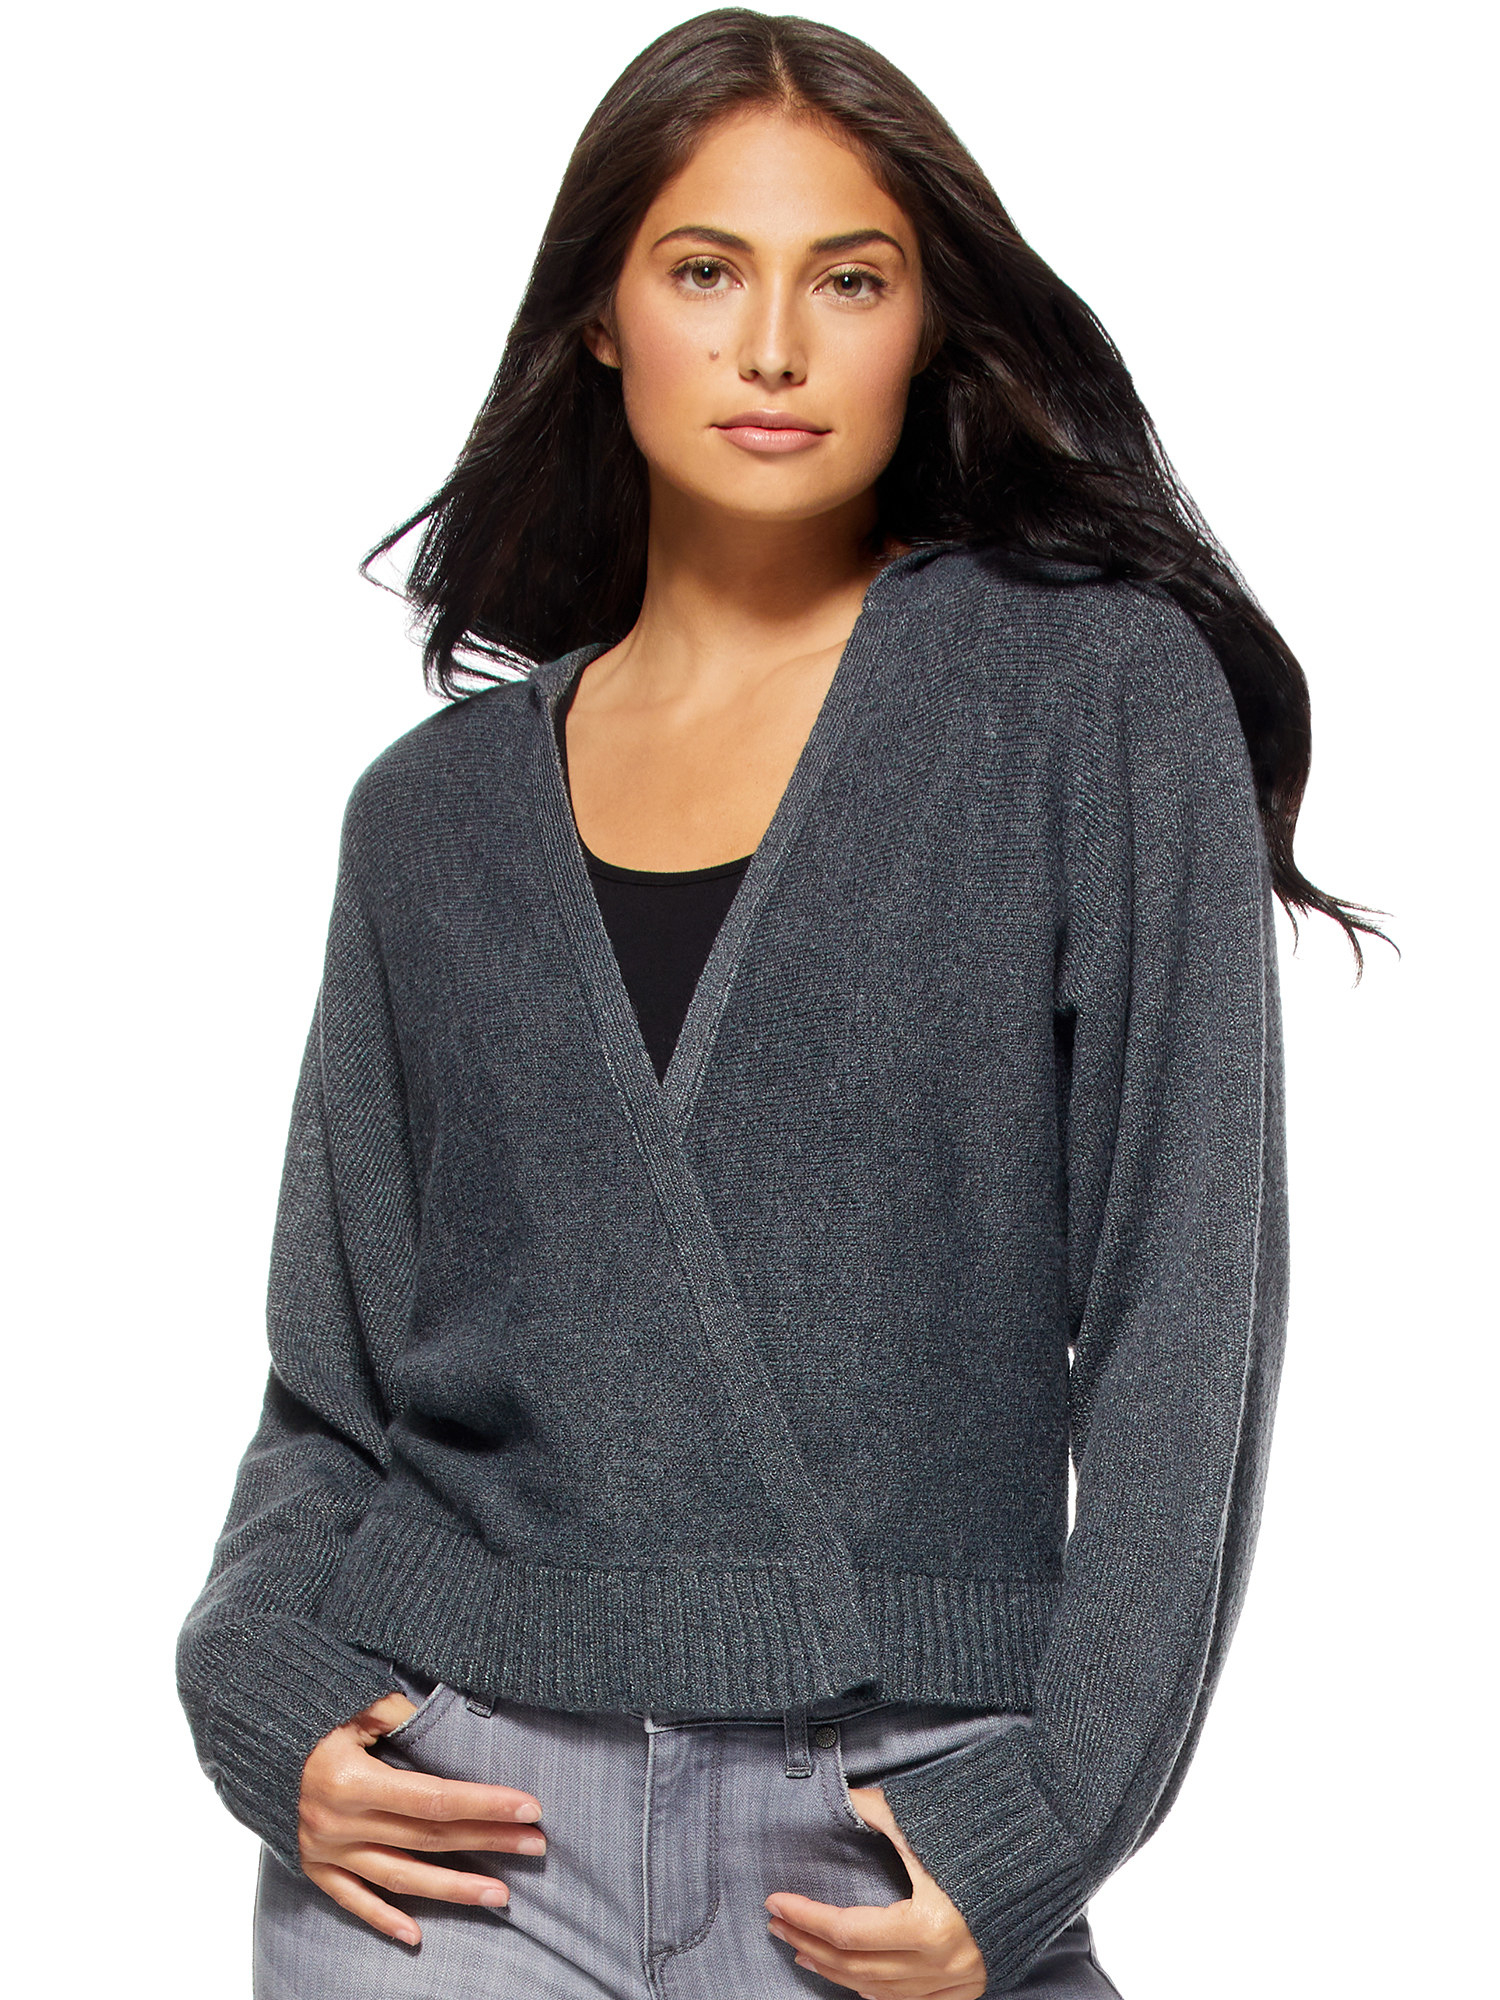 person wearing a gray sweater and gray-washed jeans